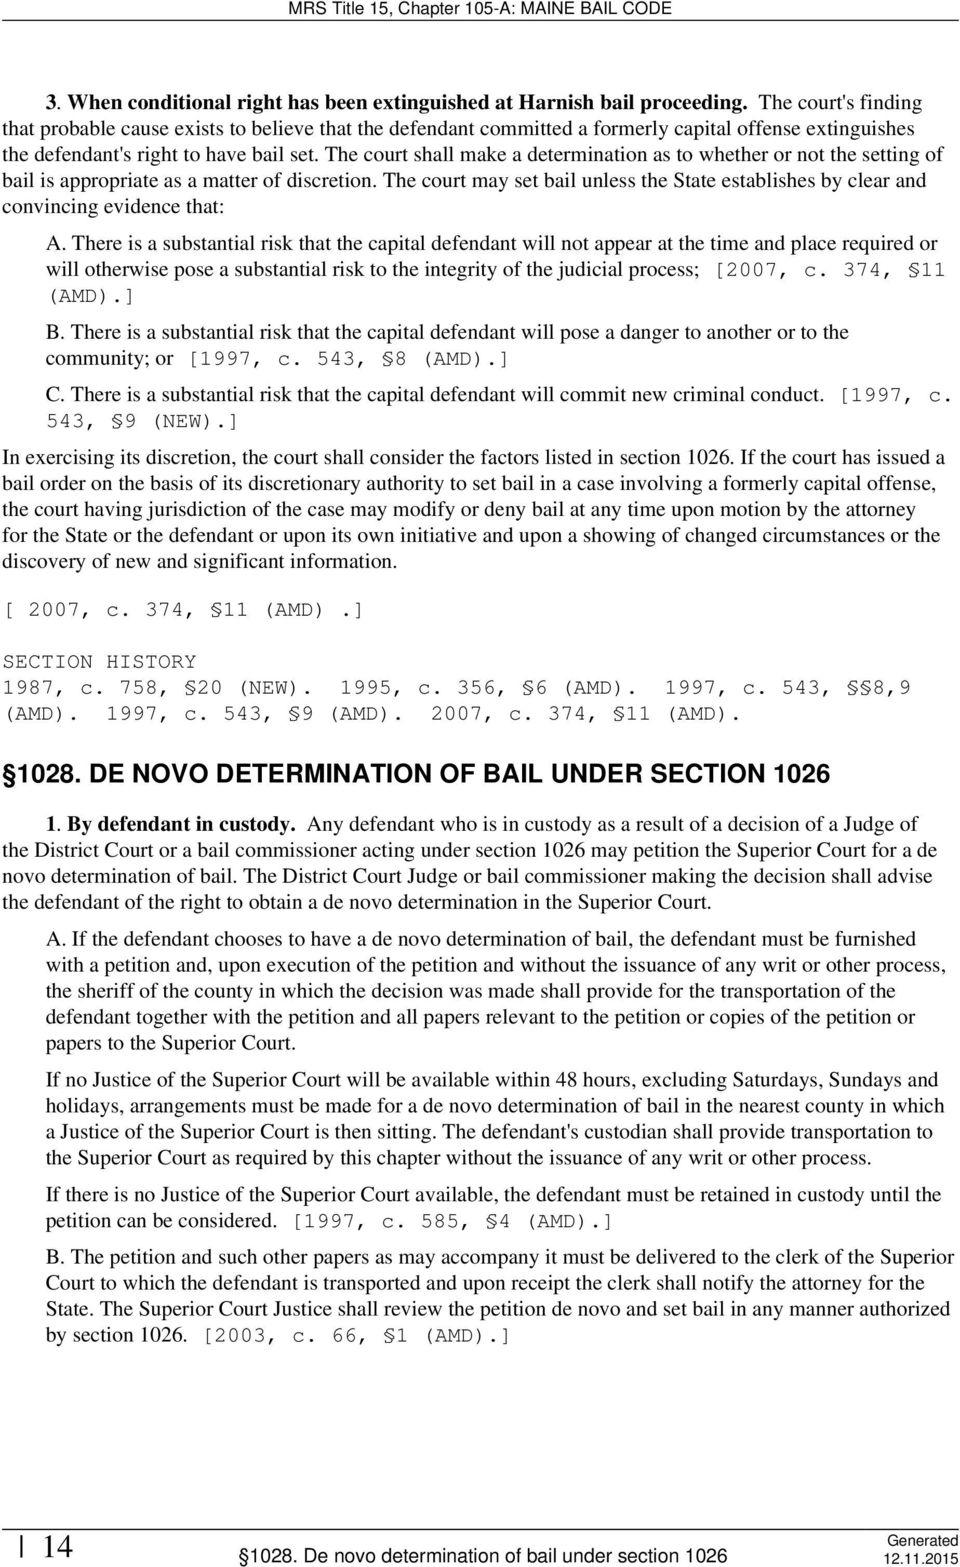 The court shall make a determination as to whether or not the setting of bail is appropriate as a matter of discretion.